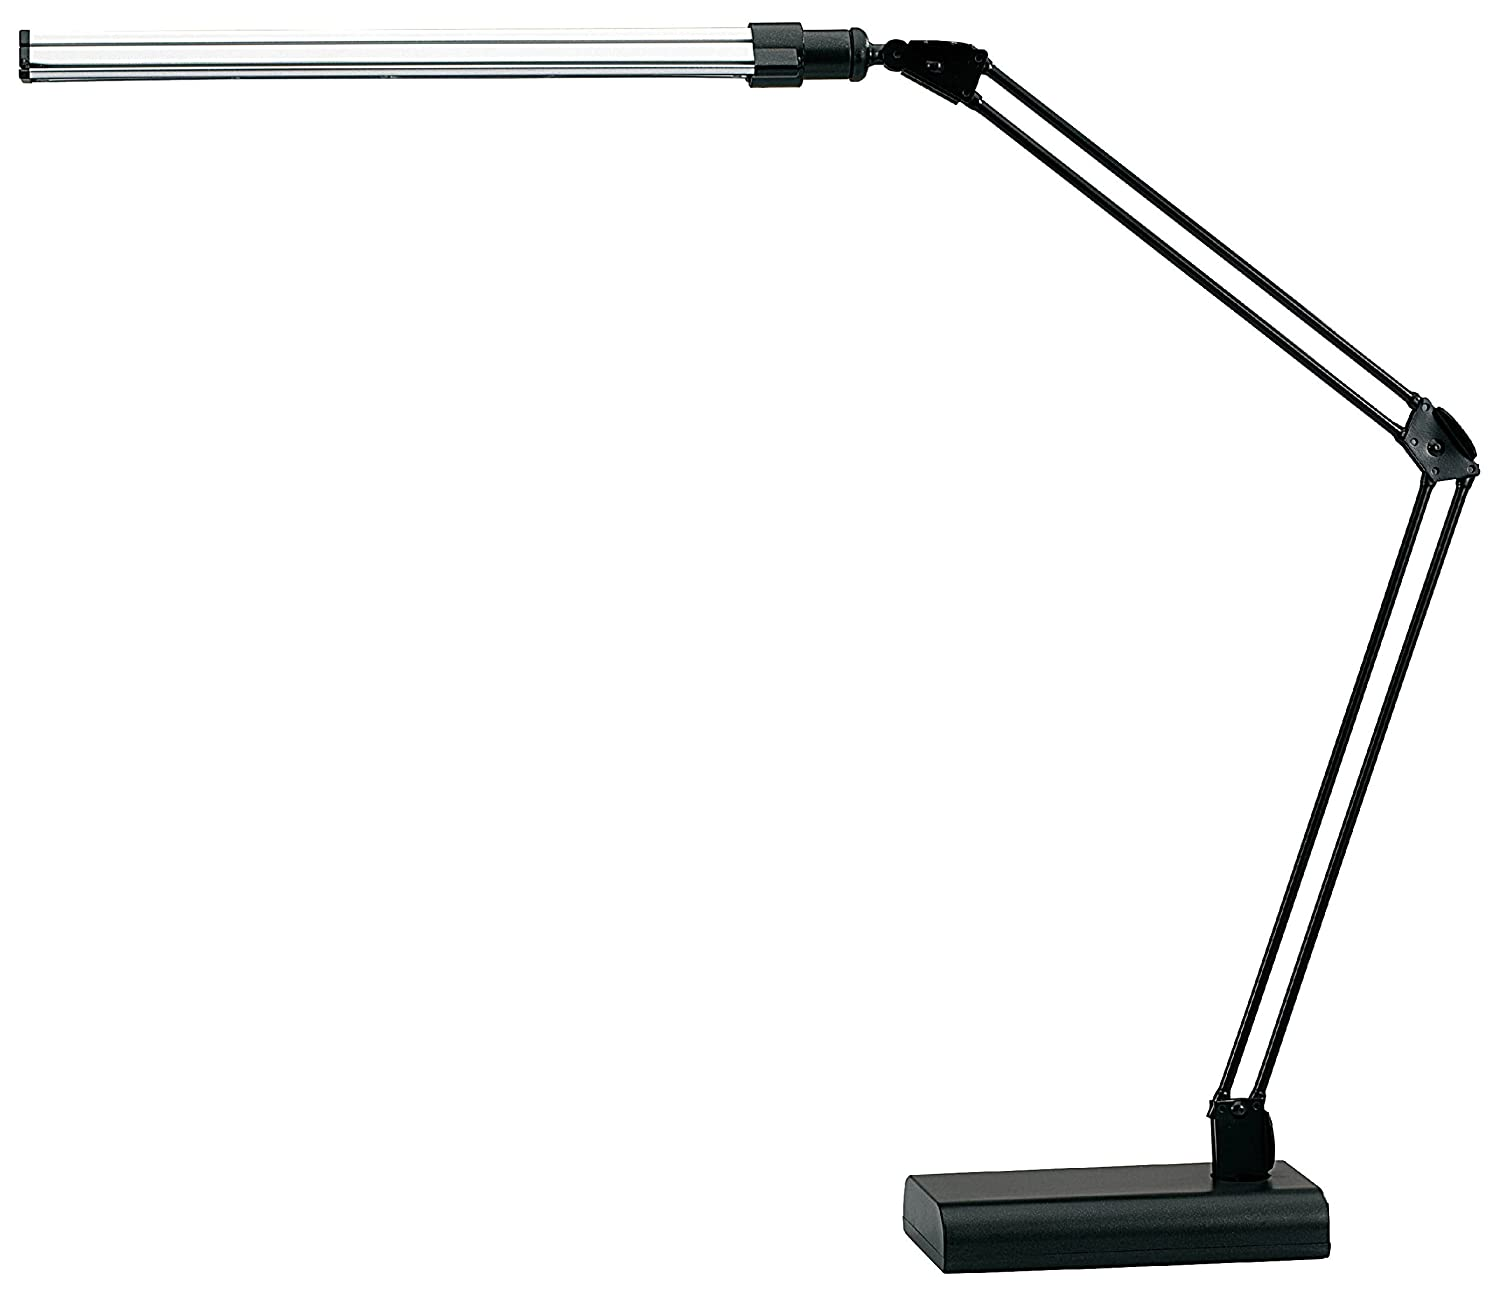 Amazon v light led energy efficient ultra slim desk lamp with amazon v light led energy efficient ultra slim desk lamp with adjustable arms vsl188nc office products geotapseo Images